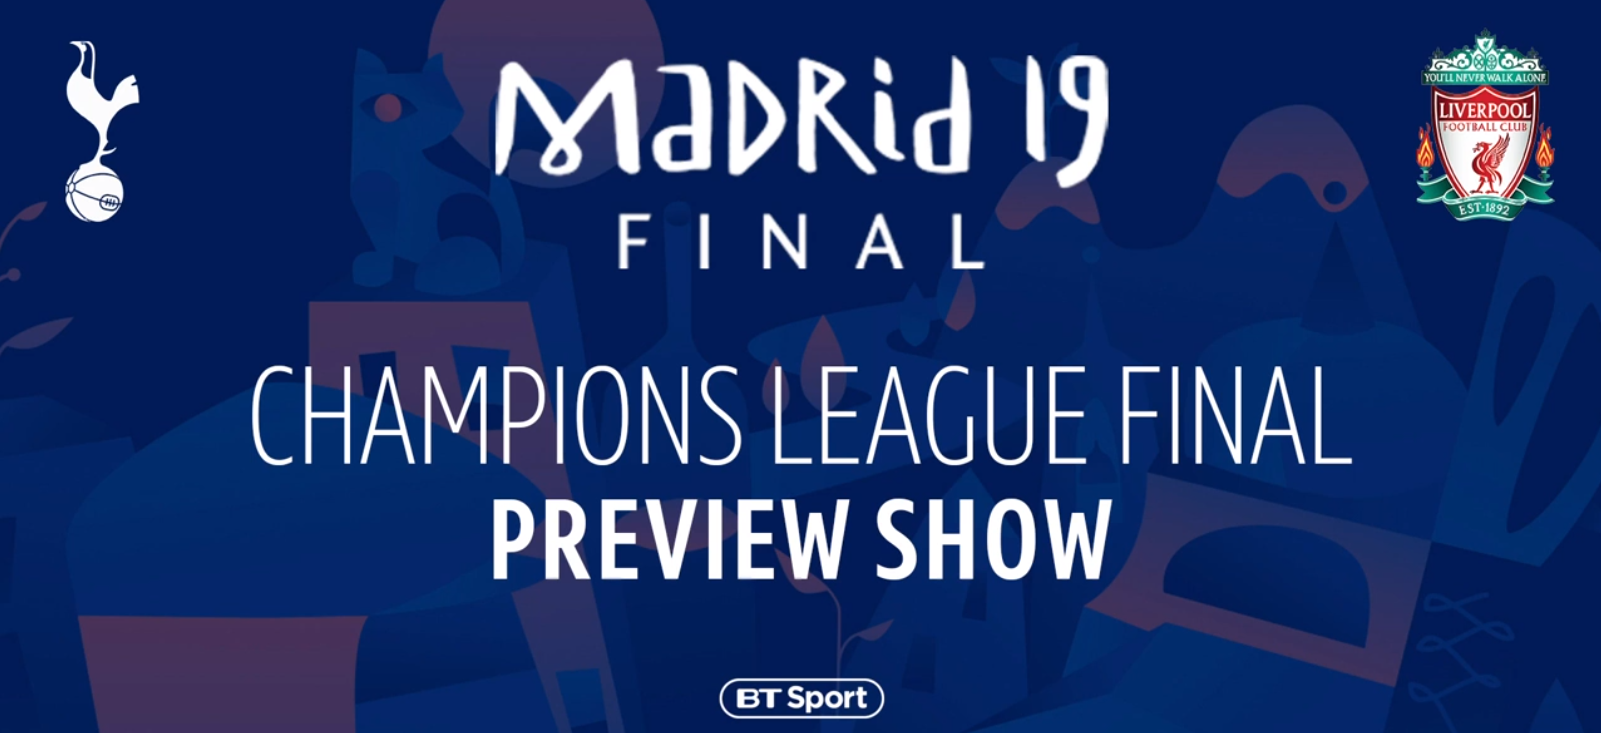 Liverpool's final training session - Champions League final preview show |  31 May 2019